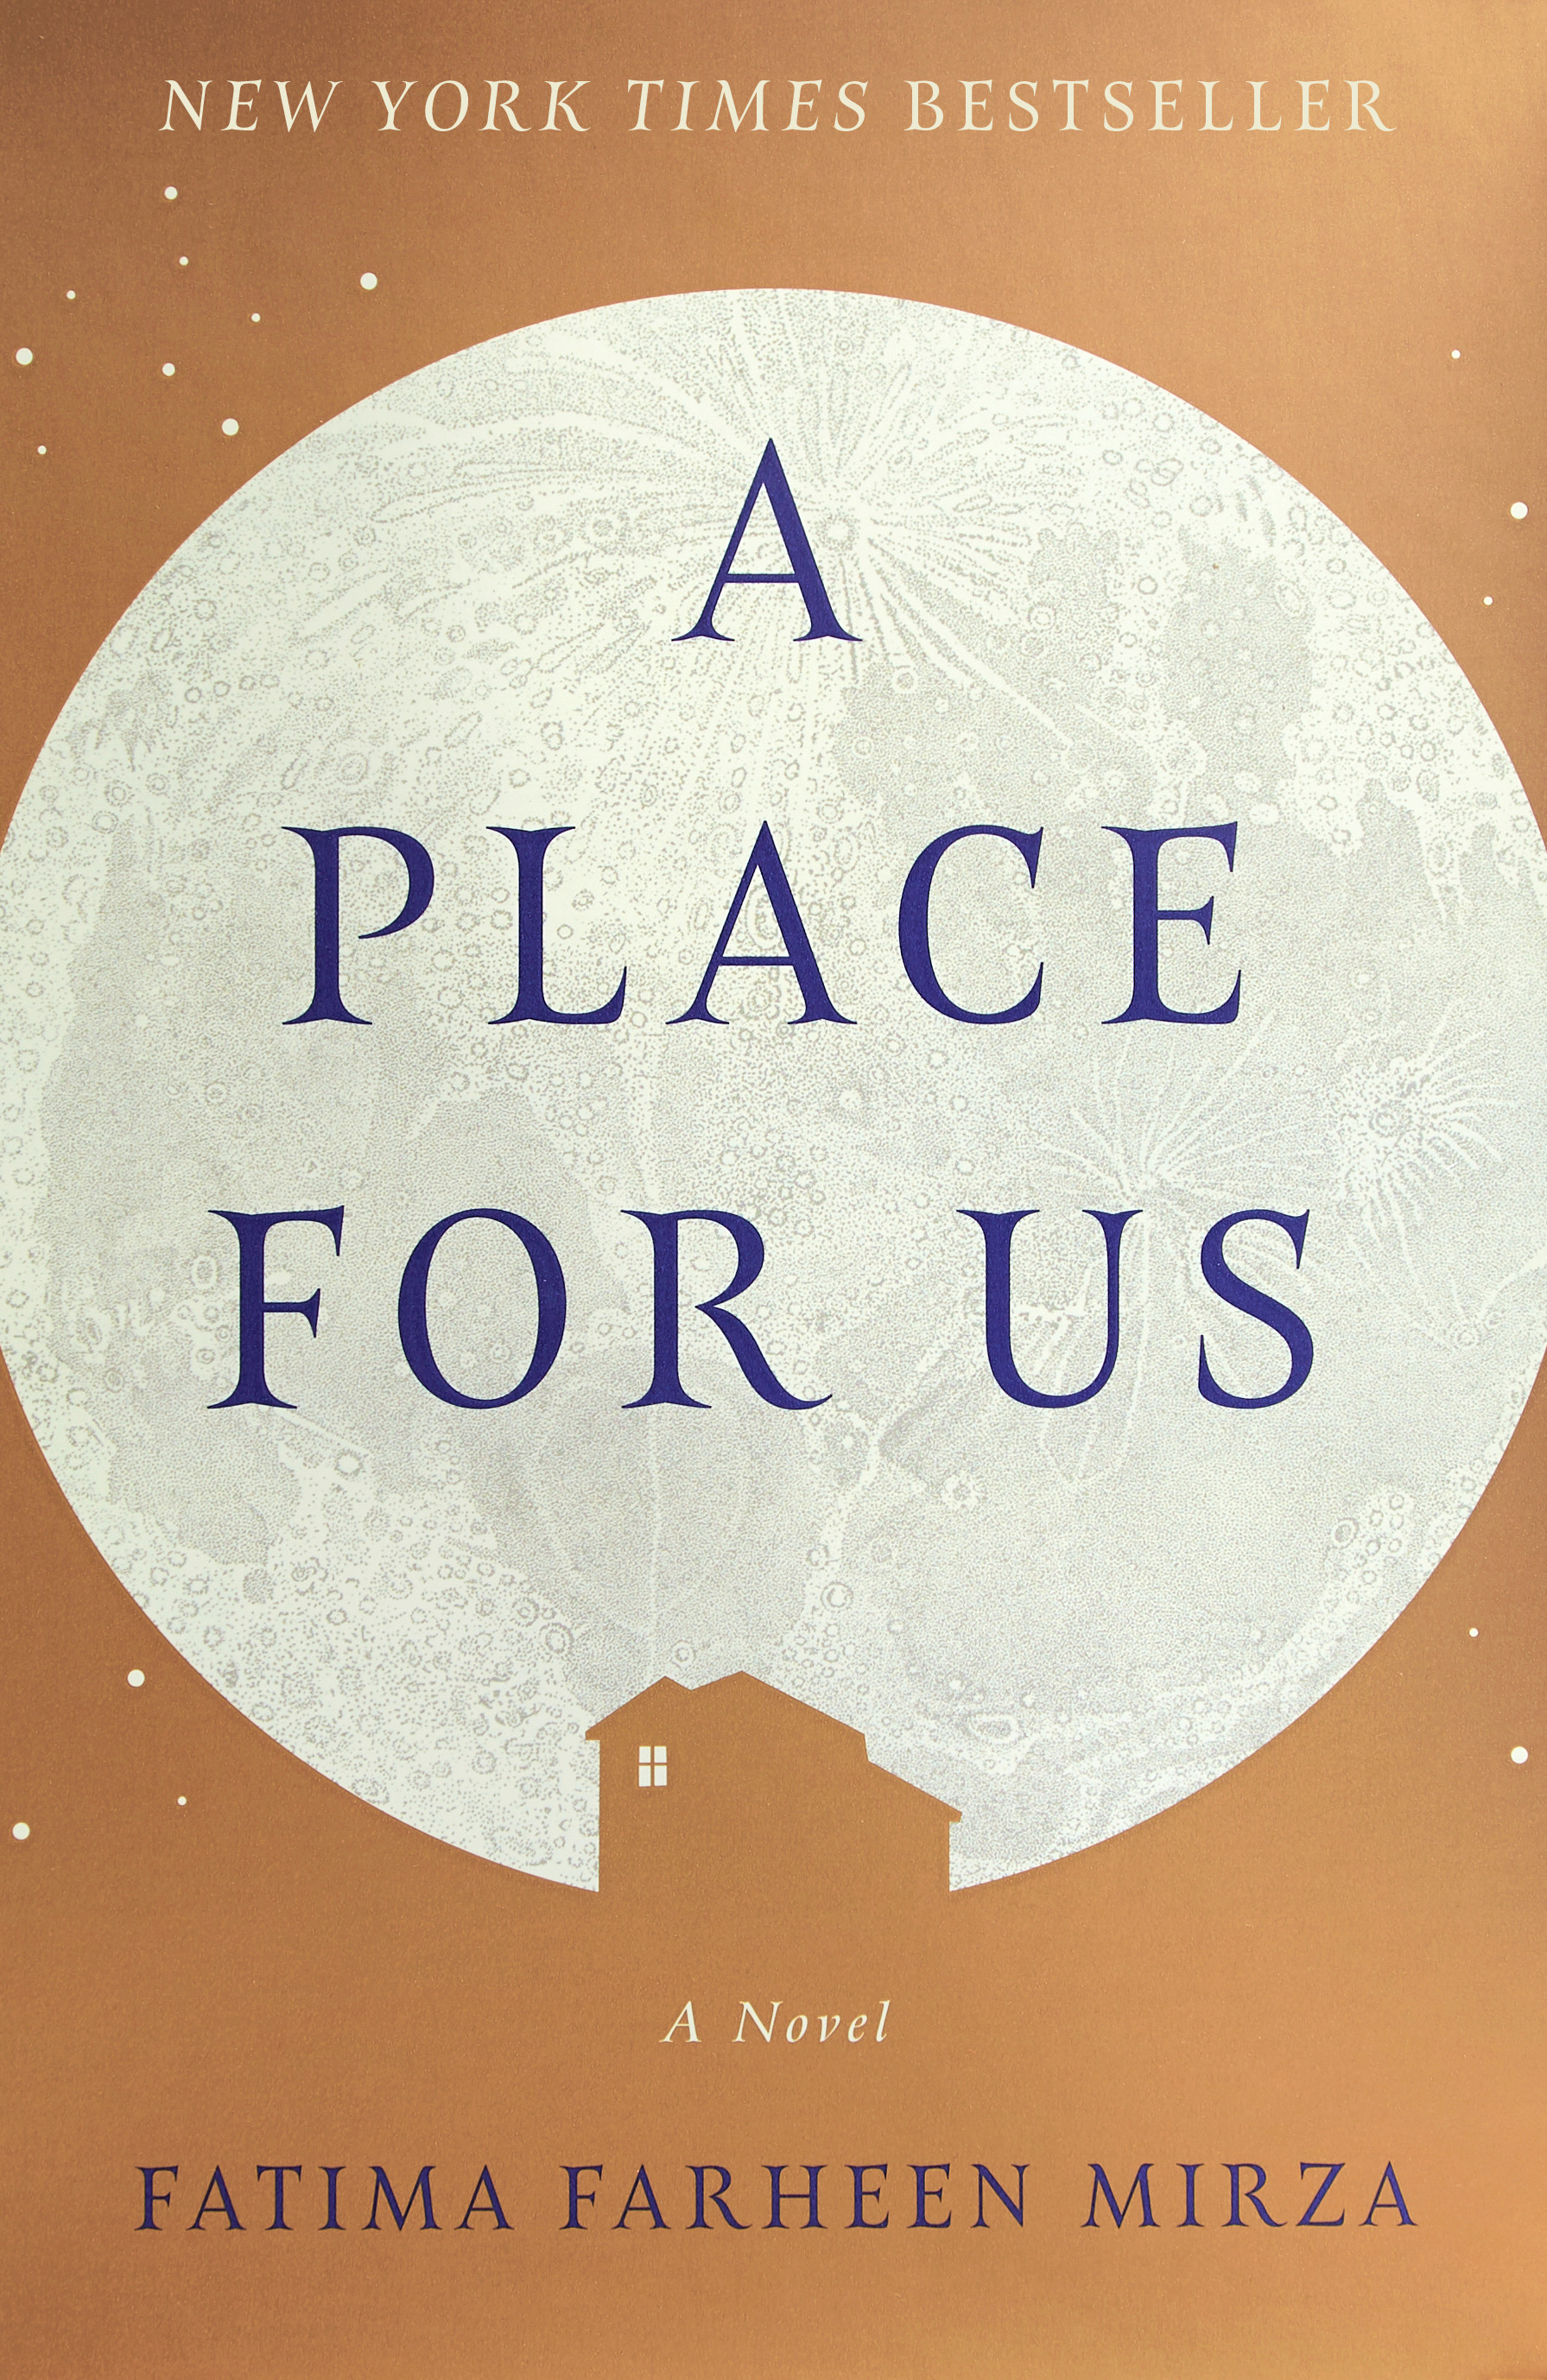 A Place for Us by Fatima Farheen Mirza - A Place For Us, by Fatima Farheen Mirza, is a heart-wrenching, diasporic read which takes you on a birdseye view of life inside a traditional Indian-American community. A story of pride, unrequited love and family ties is scripted by Fatima from voices of a mother and a child.